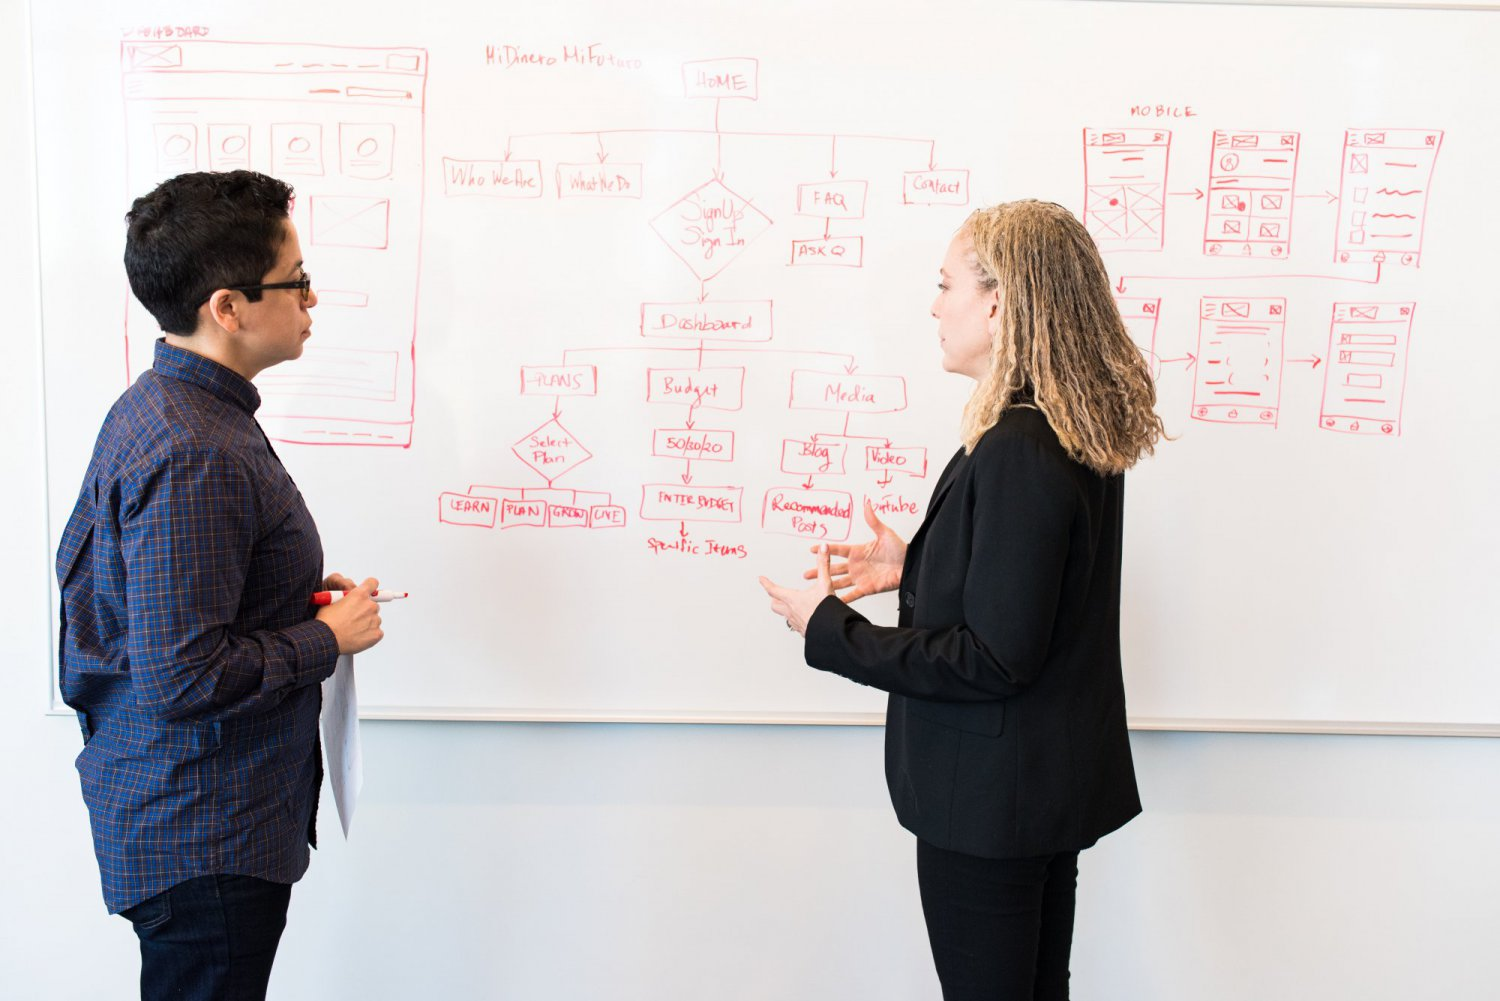 two people standing a whiteboard